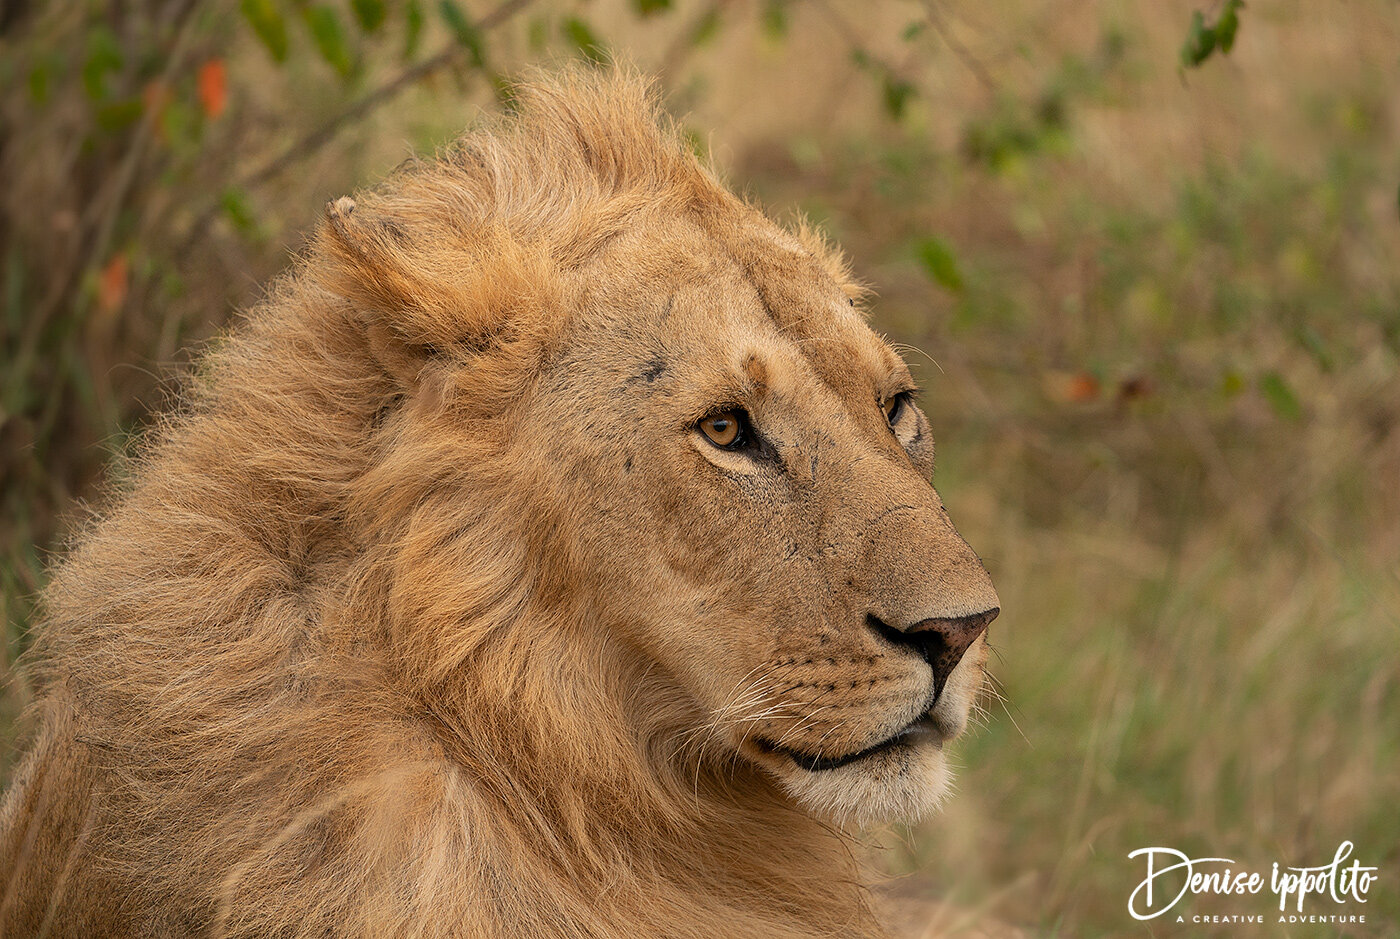 I used a slow shutter speed to blur the blowing grasses in the background and prayed the Lion would not move.